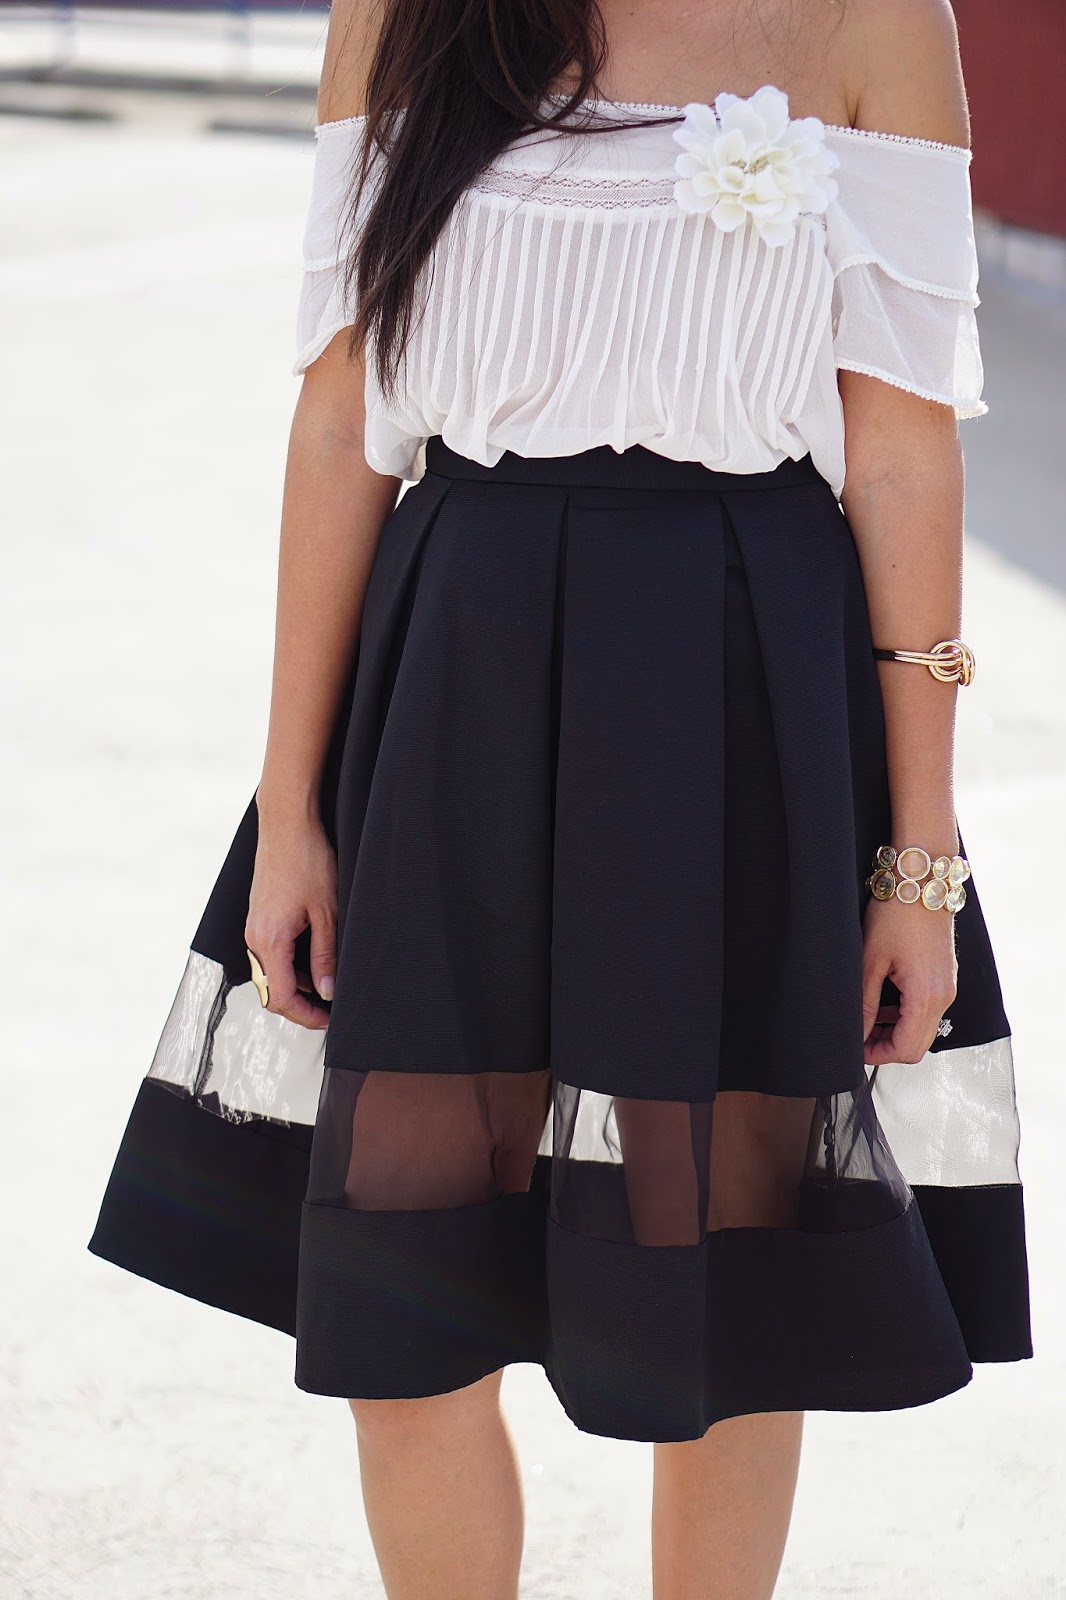 MNG by Mango Peasant Top, JCPenney, Express High Waisted Full Midi Skirt, Schutz gold heels, My Habit, La Mer watch,